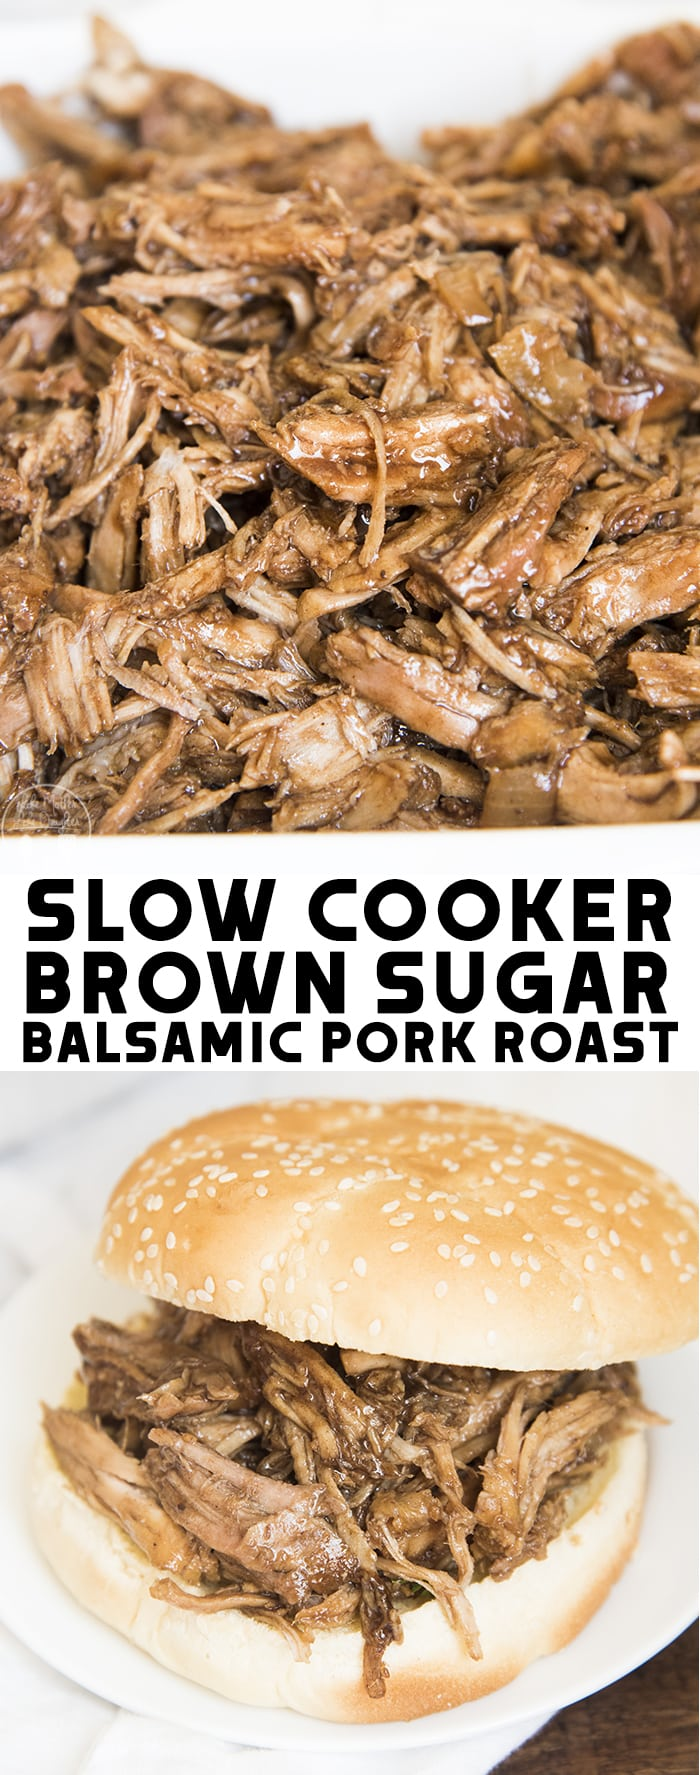 This Slow Cooker Brown Sugar Balsamic Pork Roast is a flavorful, tender pork that in a delicious tangy sweet glaze! Perfect for an easy dinner everyone will love!